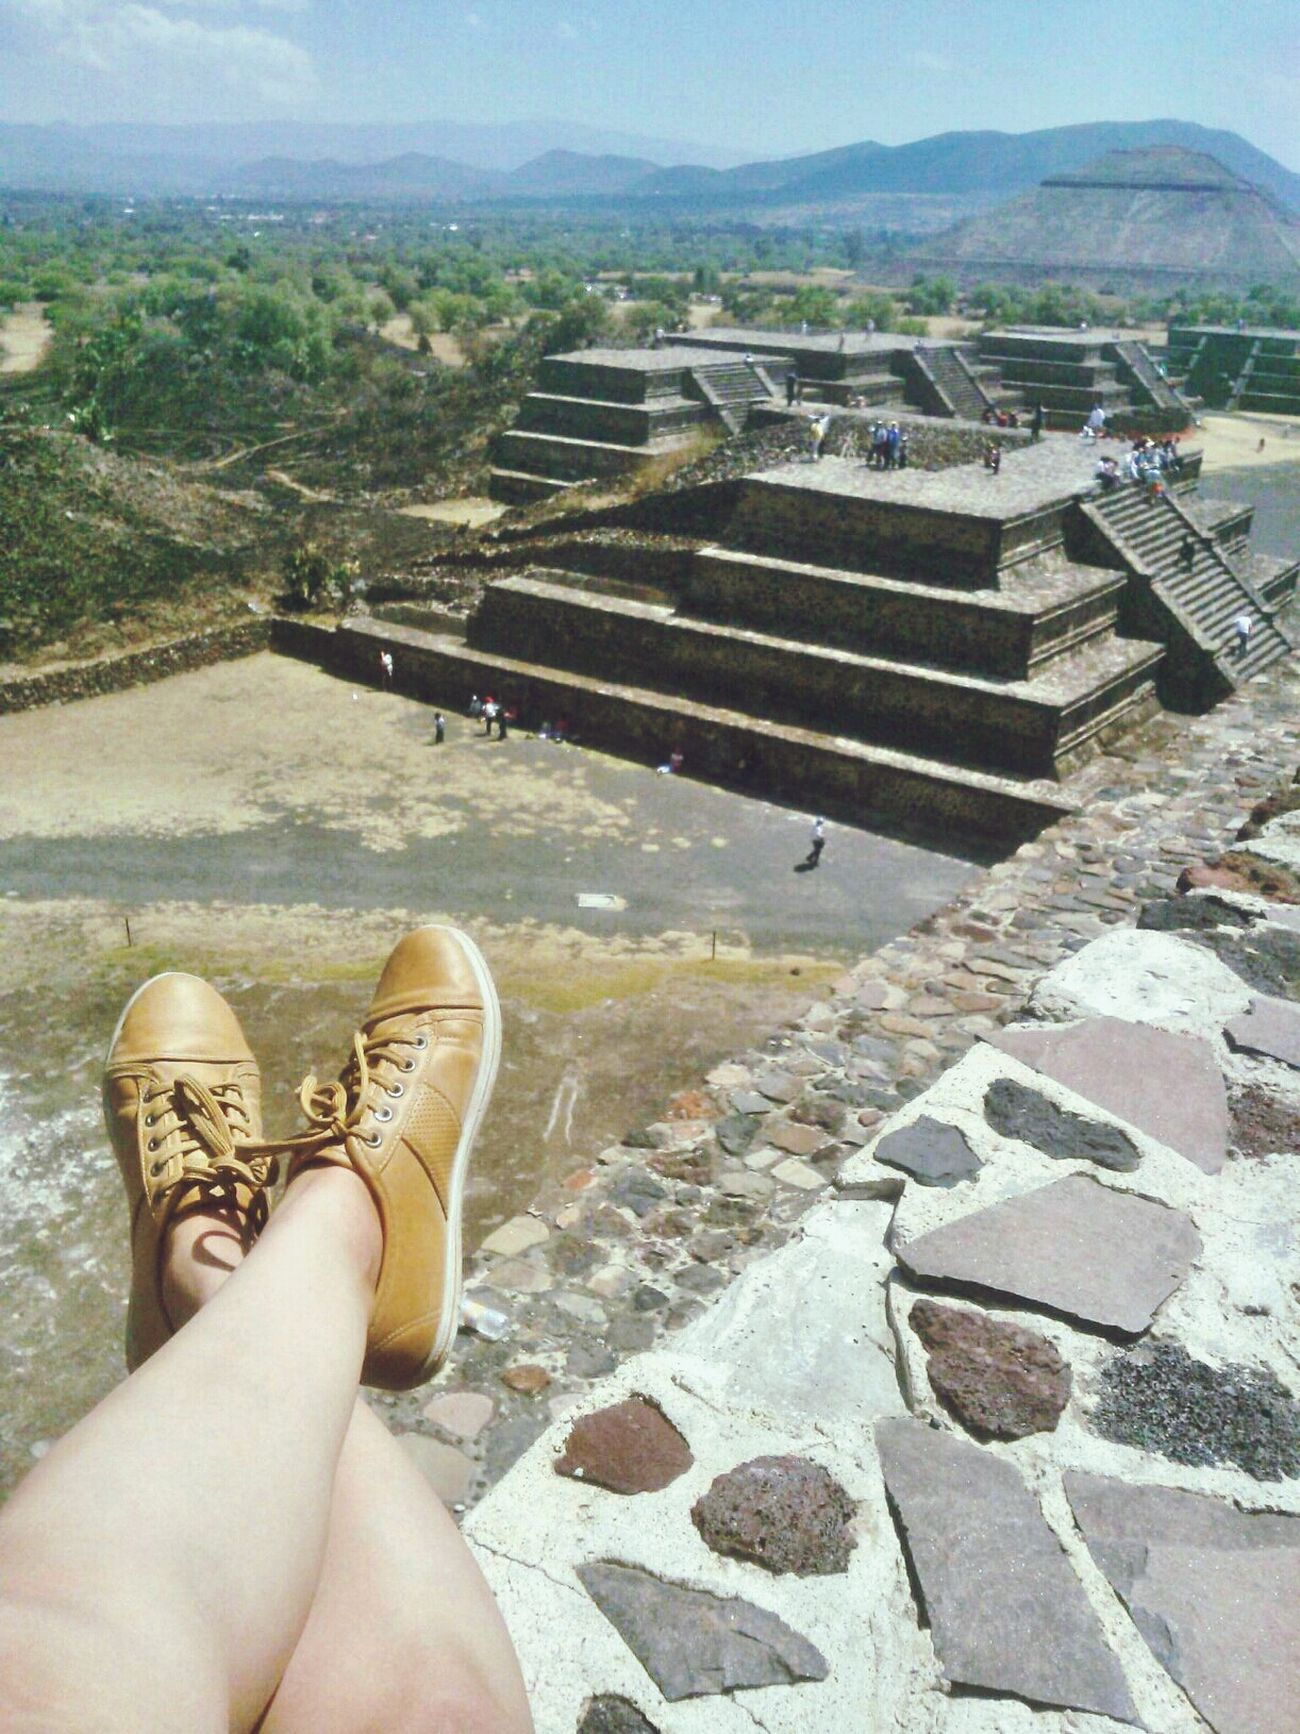 A Sunday smile. ✌ Teotihuacan.